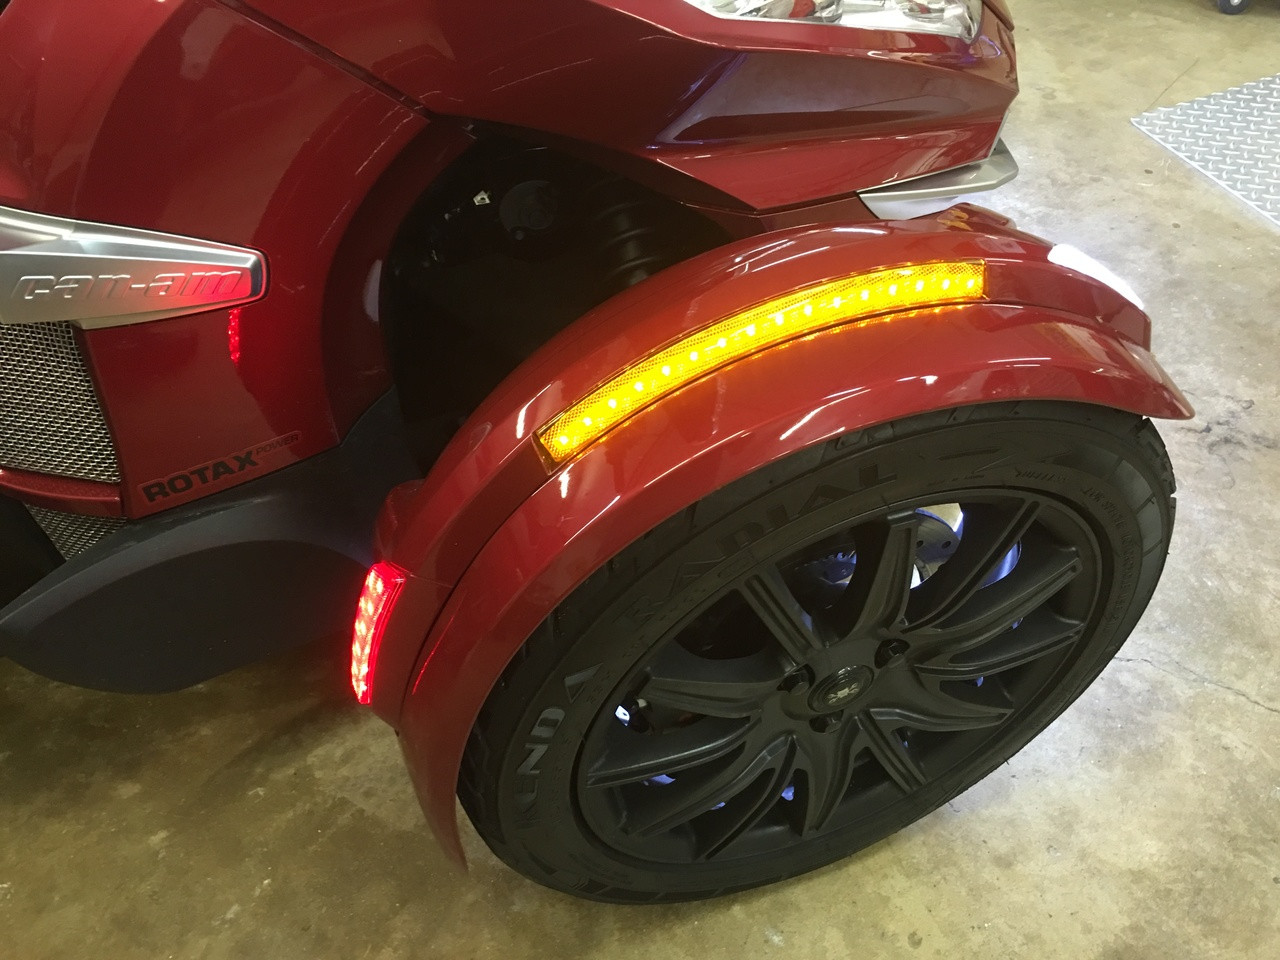 Front Fender Complete Led Reflector Kit By Show Chrome Fits All Rt Wiring Harness Plug Spyders With The